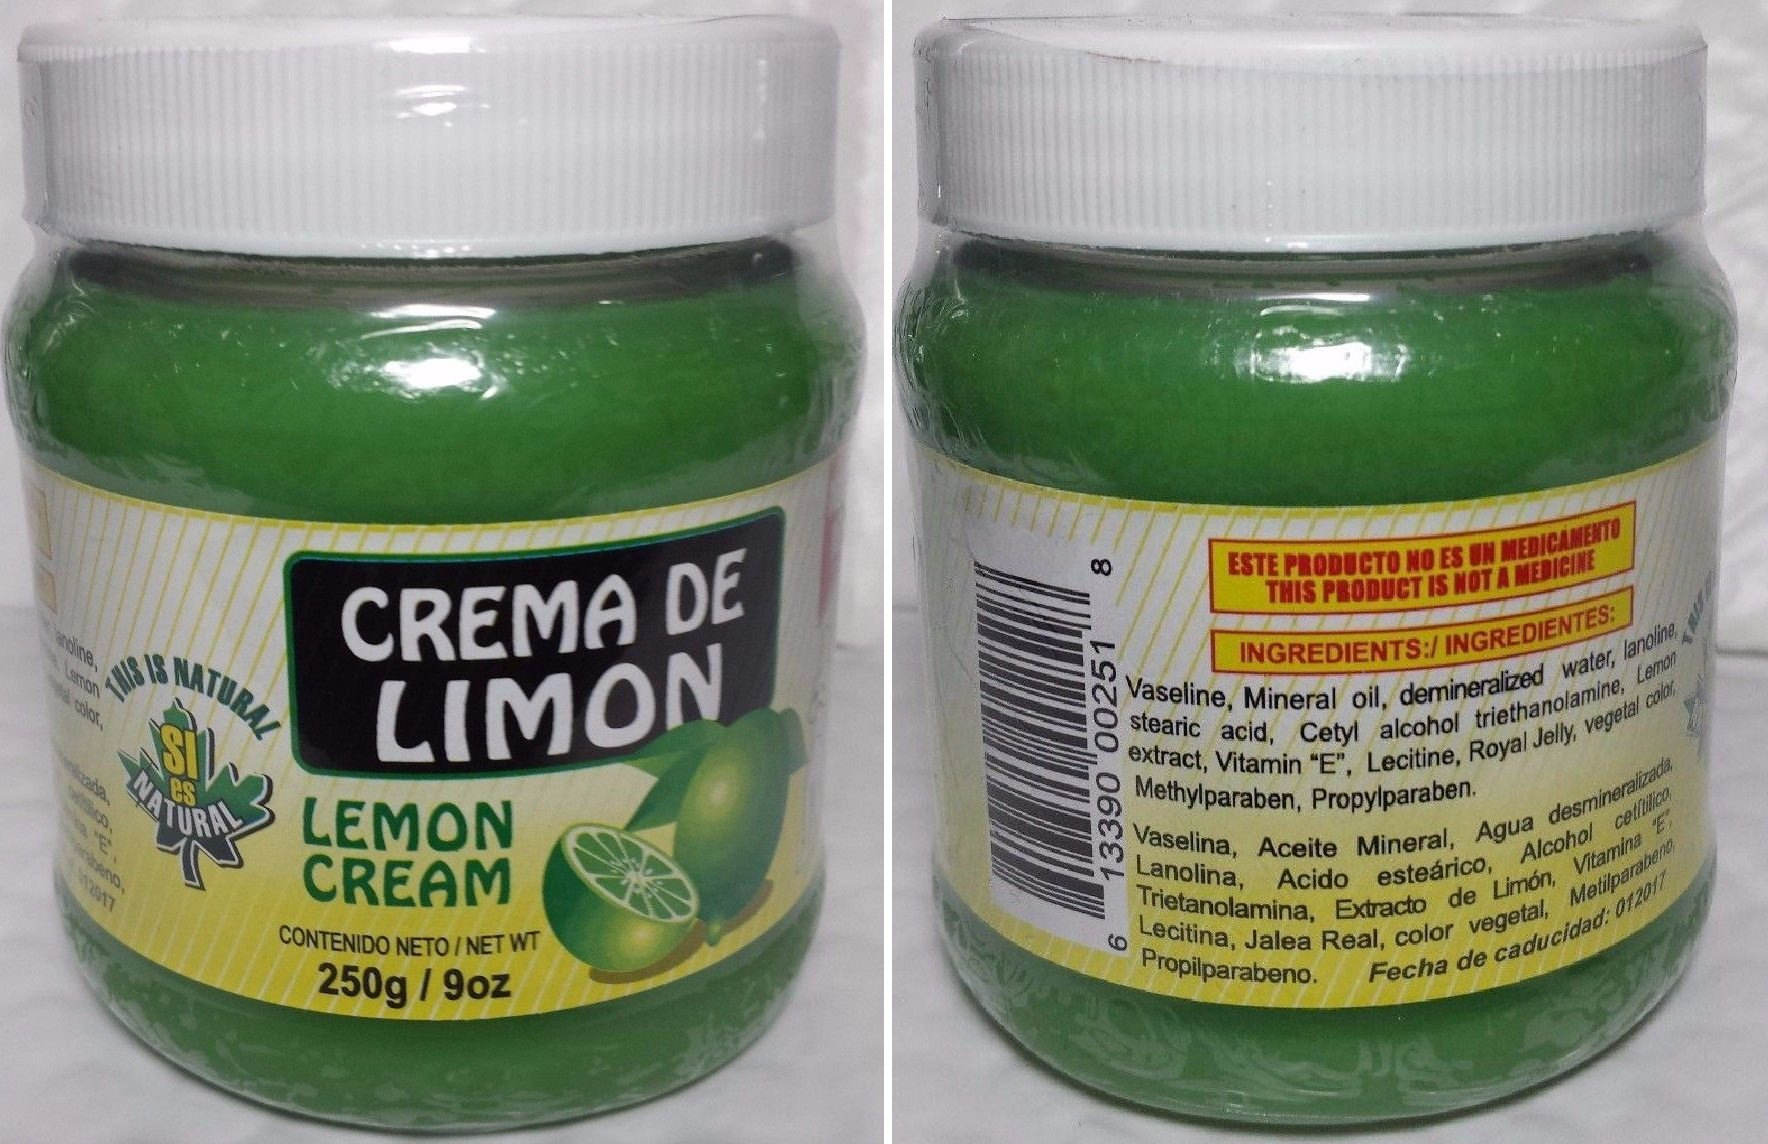 TOP Satisfied LEMON CREAM 9OZ CREMA REDUCTORA DE LIMON 250GR NATURAM3 X 01/2019 NEW